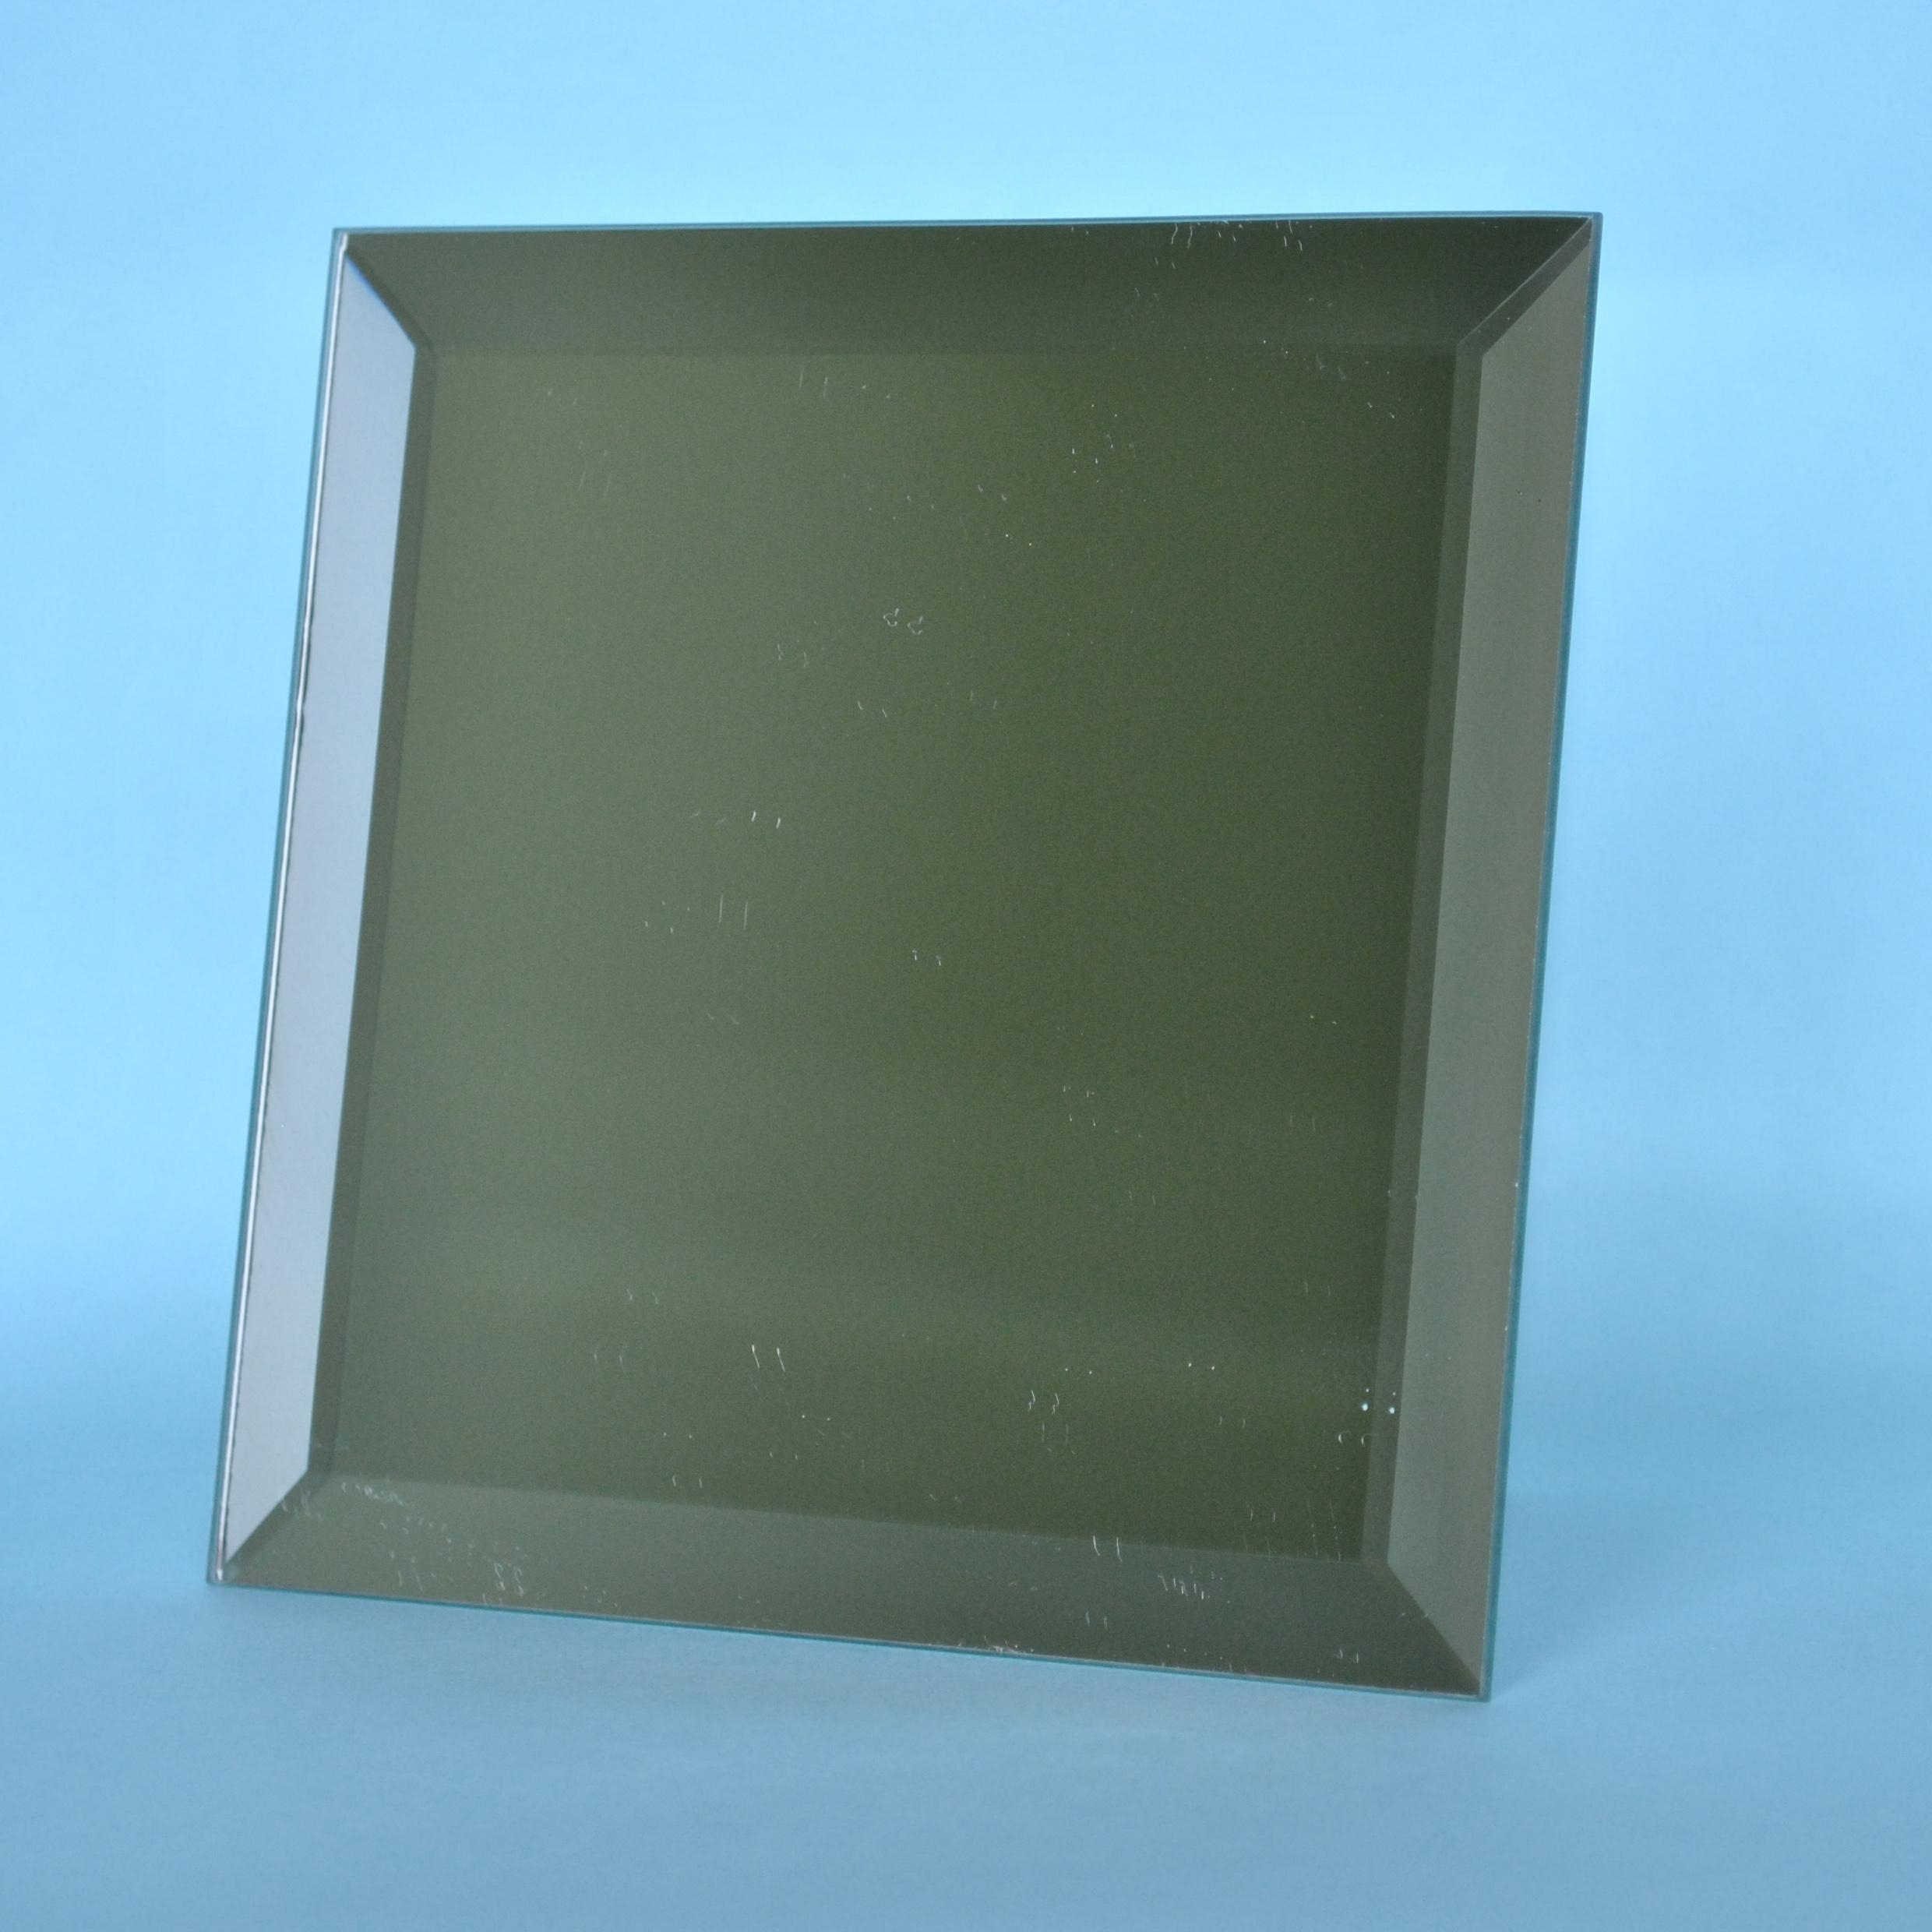 5mm Square Bevel Edge Silver Mirror China 5mm Square Bevel Edge Intended For Chamfered Edge Mirror (Image 1 of 15)